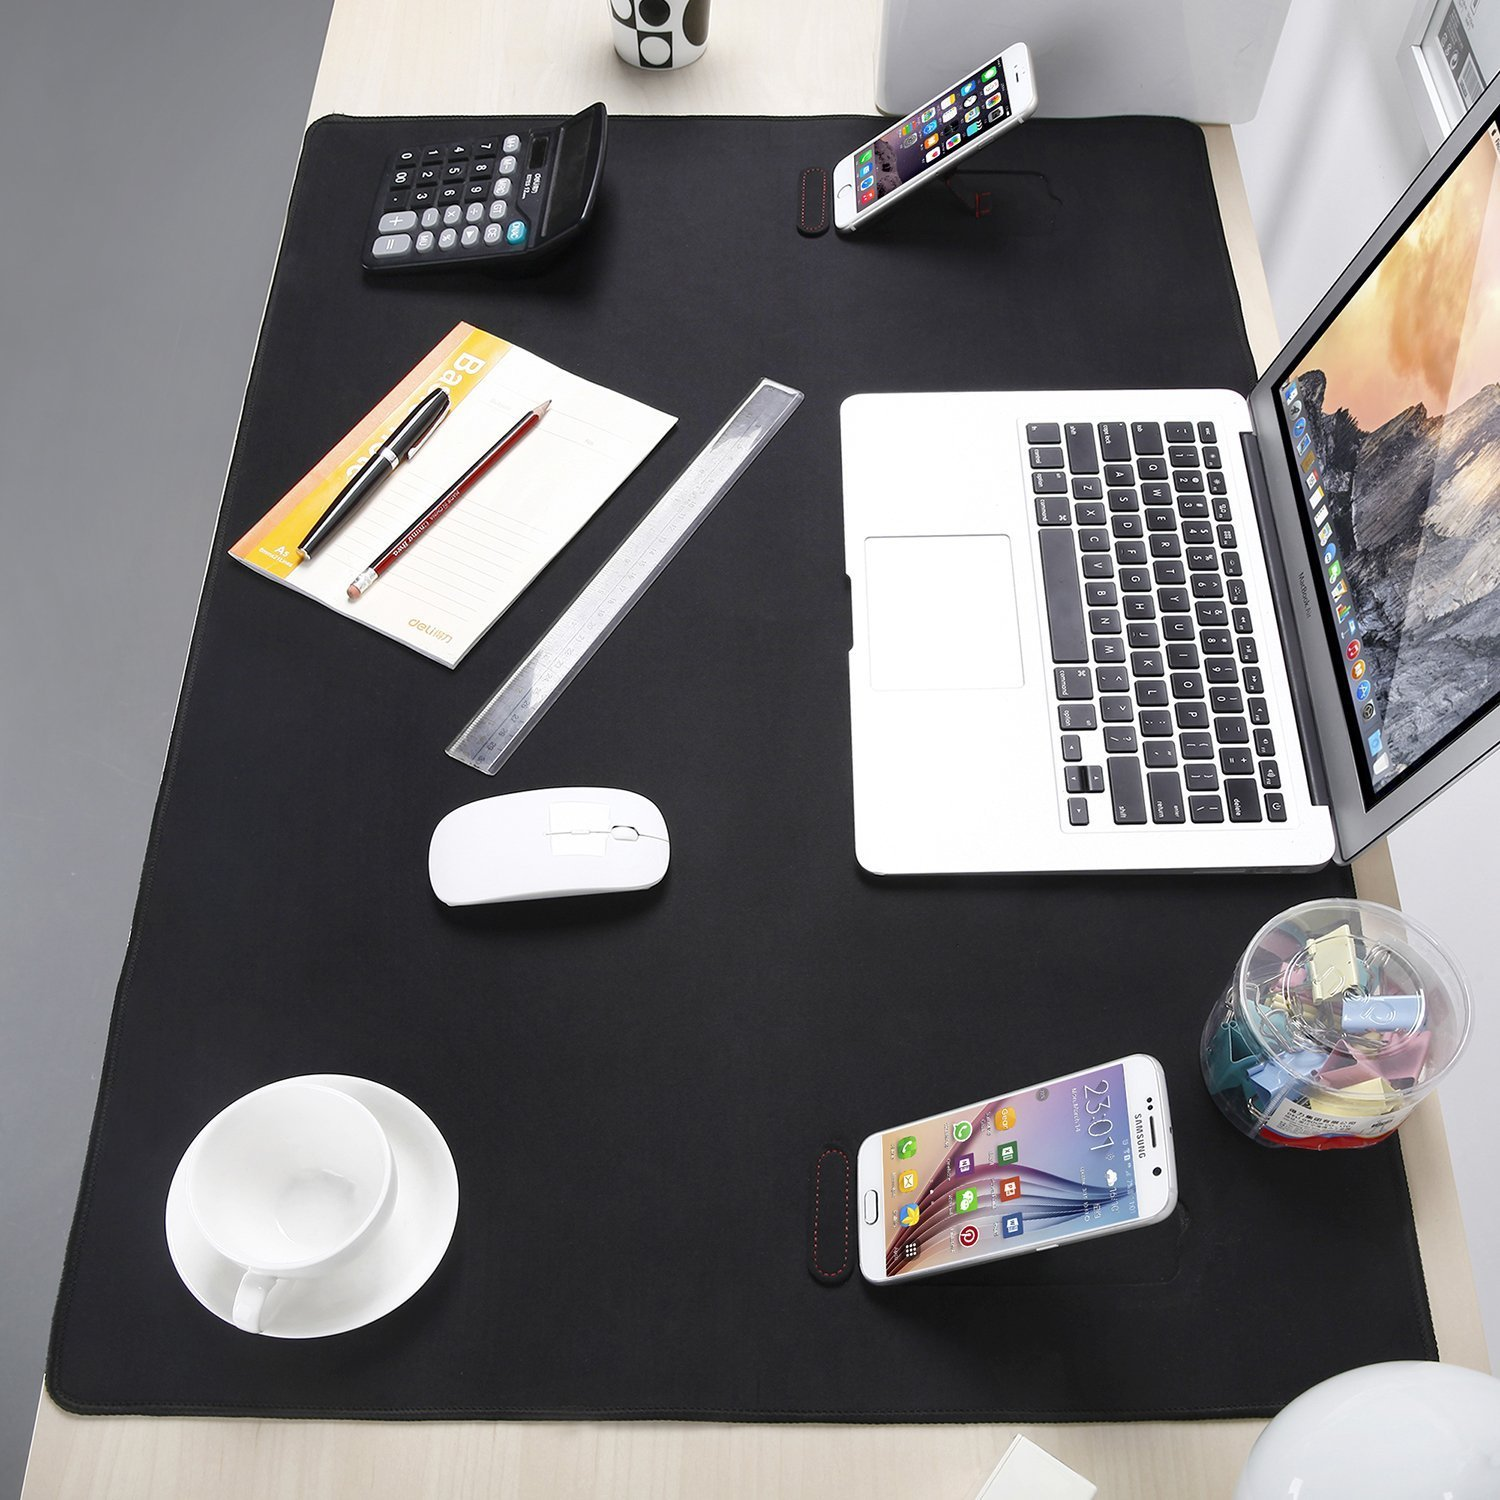 Large Extended Gaming Mouse Pad XXL, Vogek Thick Large 34''x23'' Computer Keyboard Mouse Mat Waterproof Desk Pad with 2 Kick Stands for Smart Phones Black by Vogek (Image #5)